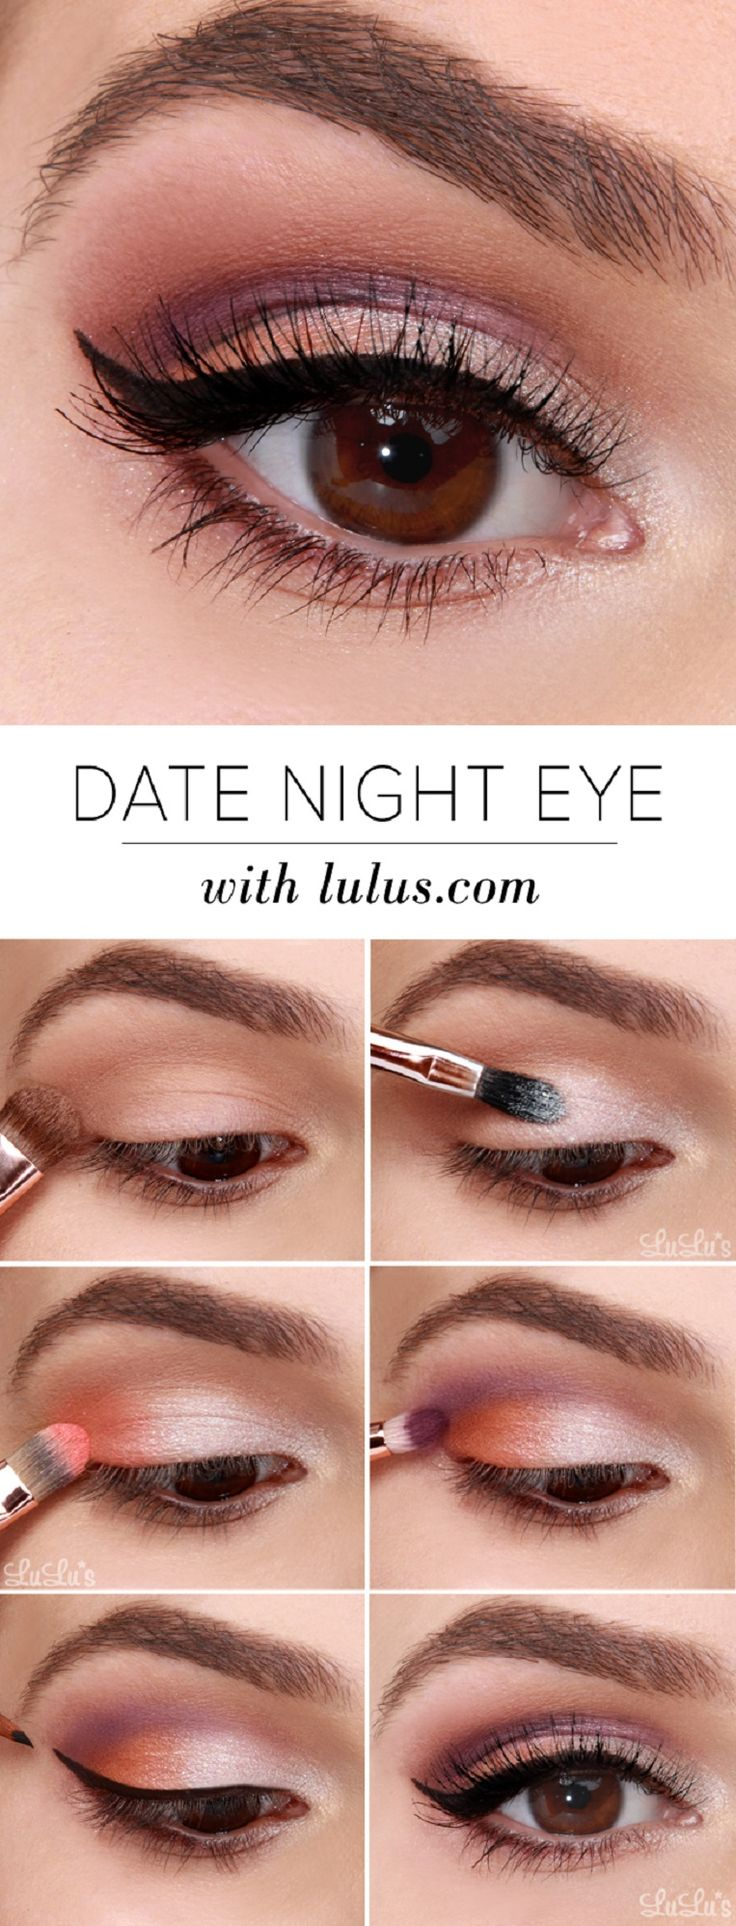 Date Night Eyeshadow Tutorial - 16 Makeup Tutorials to Get the Spring 2015 Look | GleamItUp